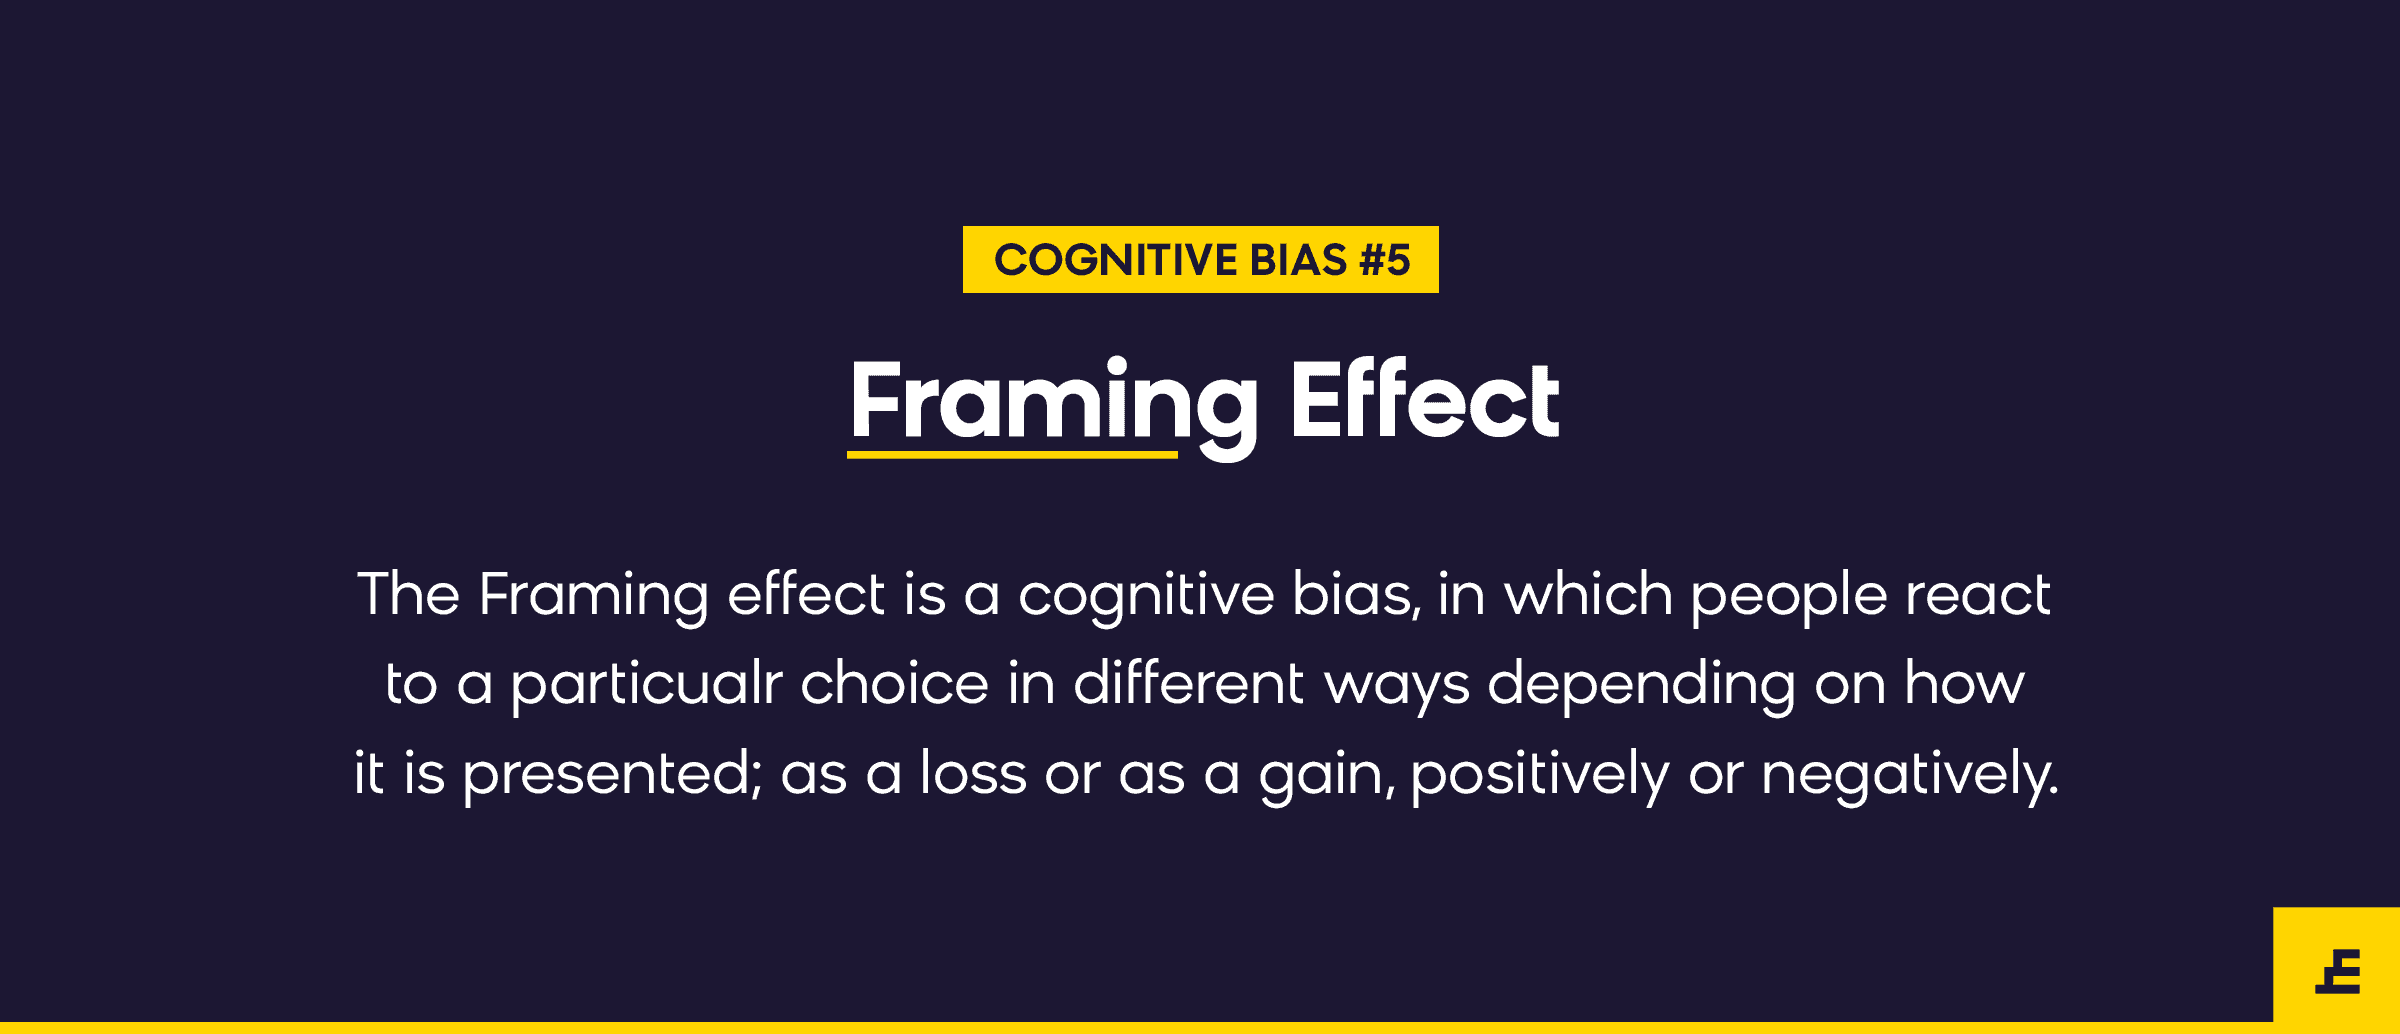 cognitive bias - framing effect